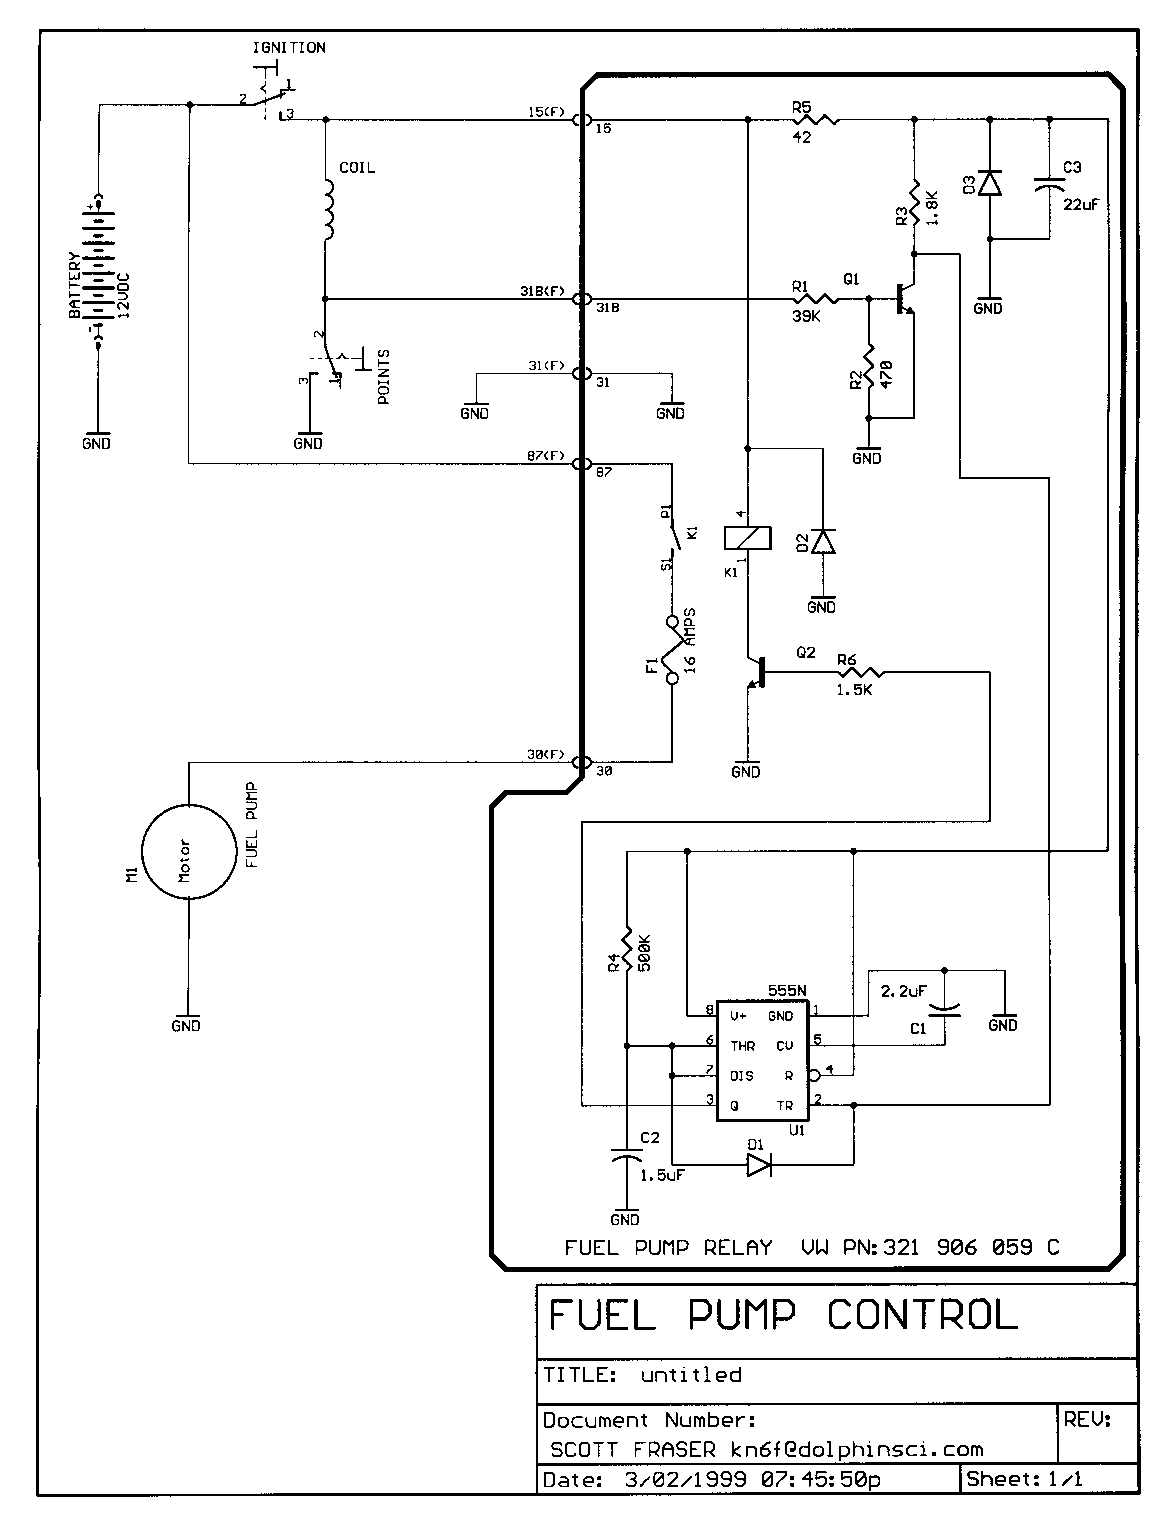 VWfuelPumpRelay thesamba com bay window bus view topic fuel pump wiring wiring diagram for fuel pump relay at webbmarketing.co